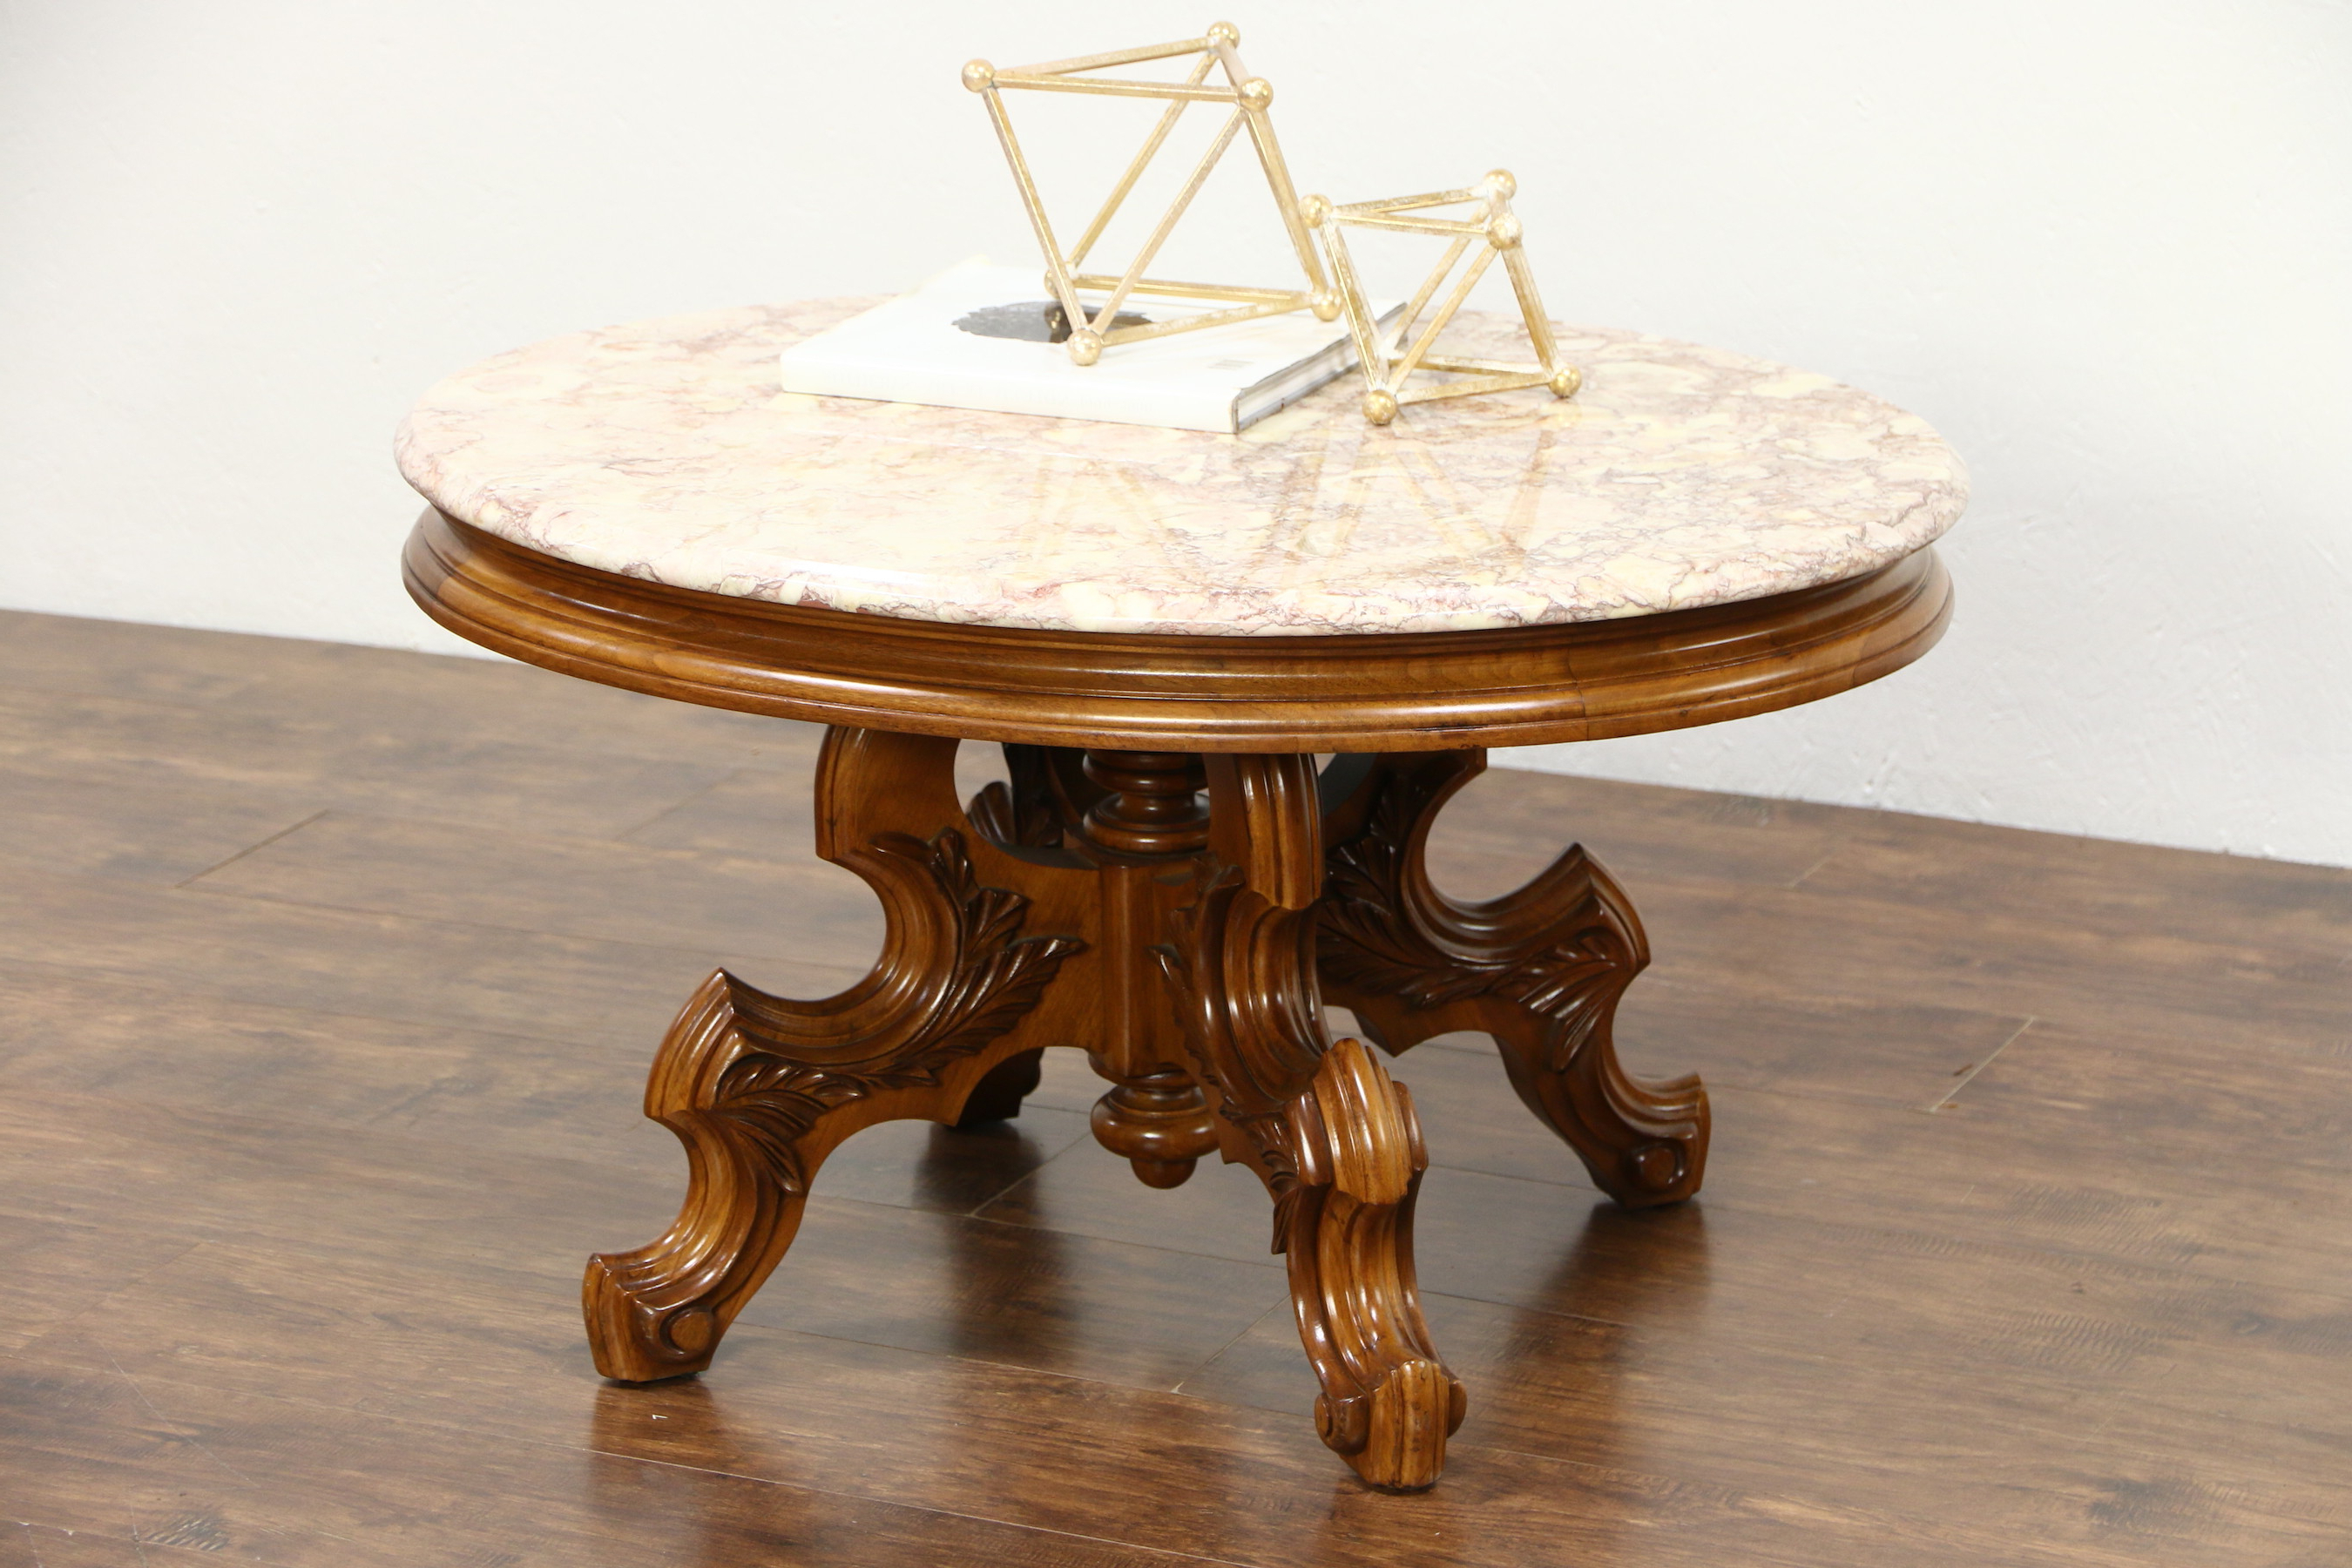 Smart Large Round Marble Top Coffee Tables Throughout Newest Probably Super Real Victorian End Table With Marble Top Gallery (View 17 of 20)